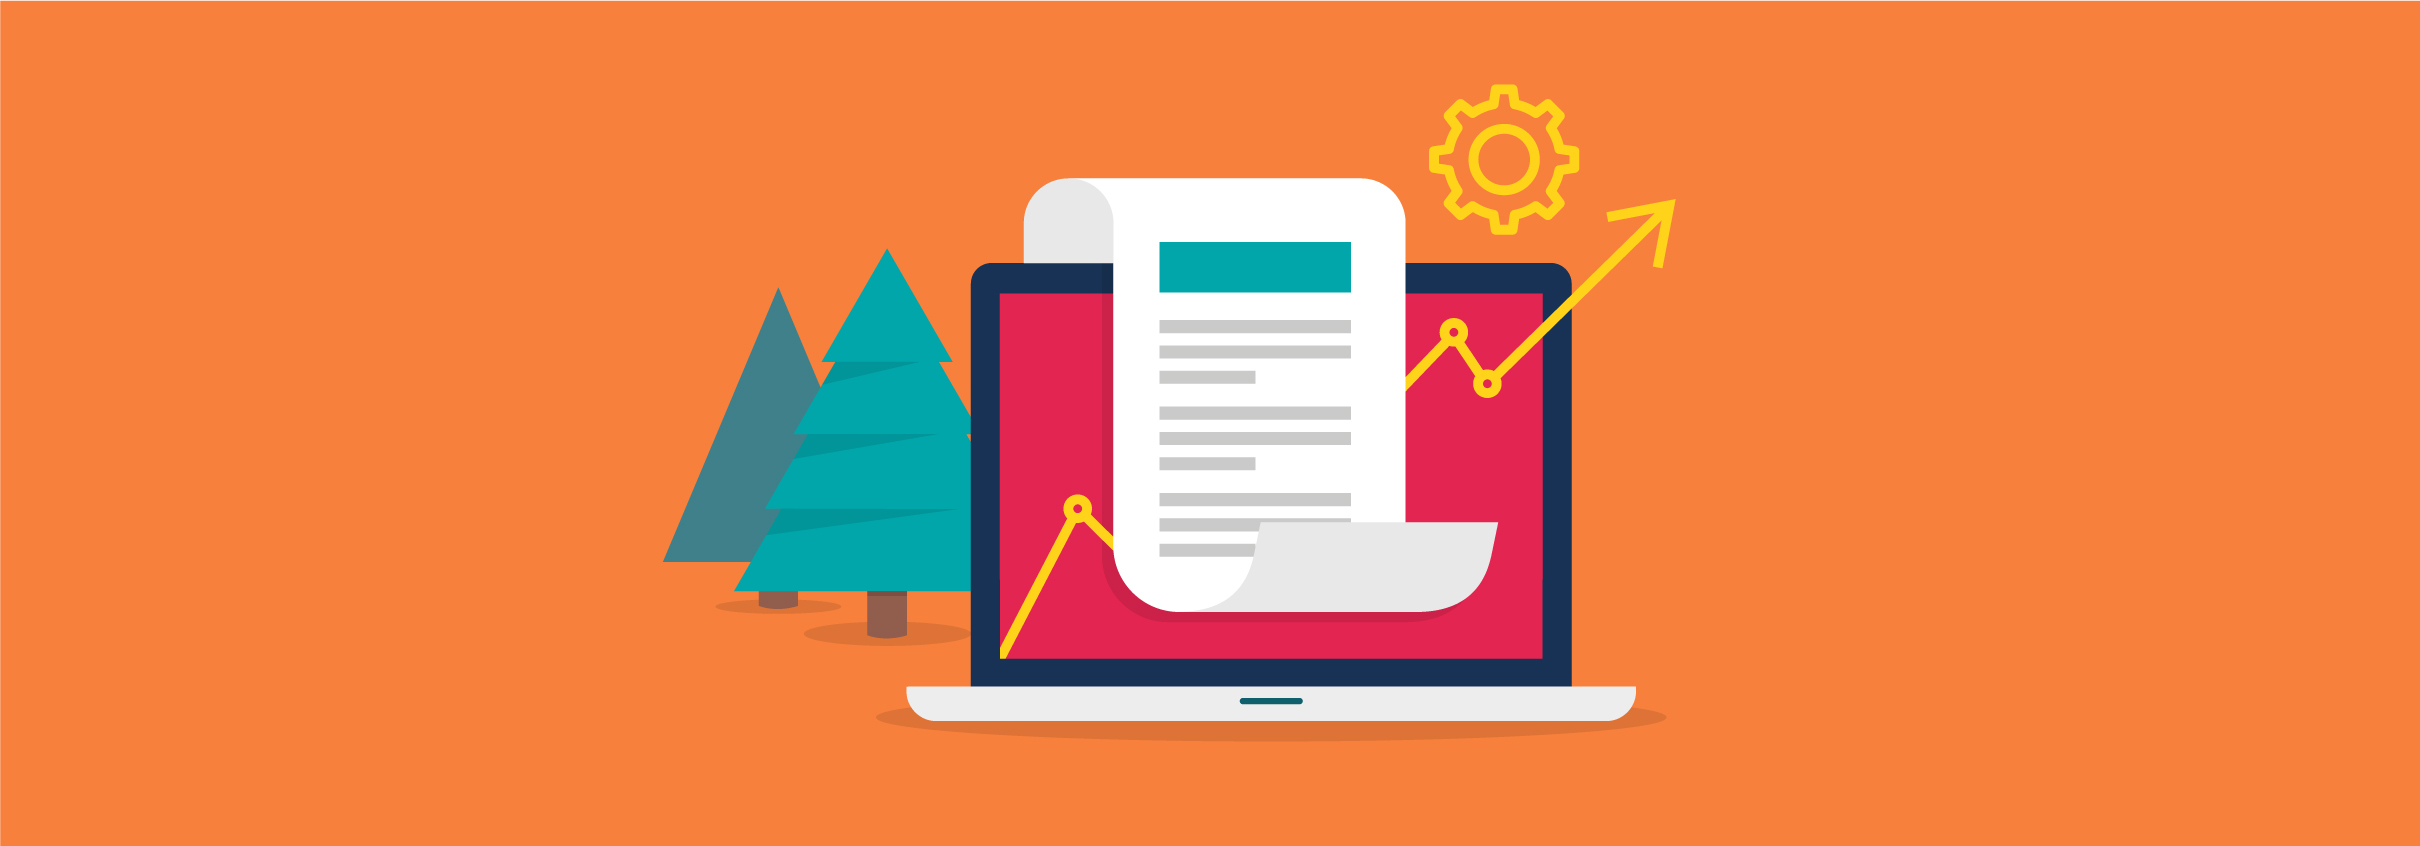 How to Grow Your Inbound Traffic by Writing Evergreen Blog Posts